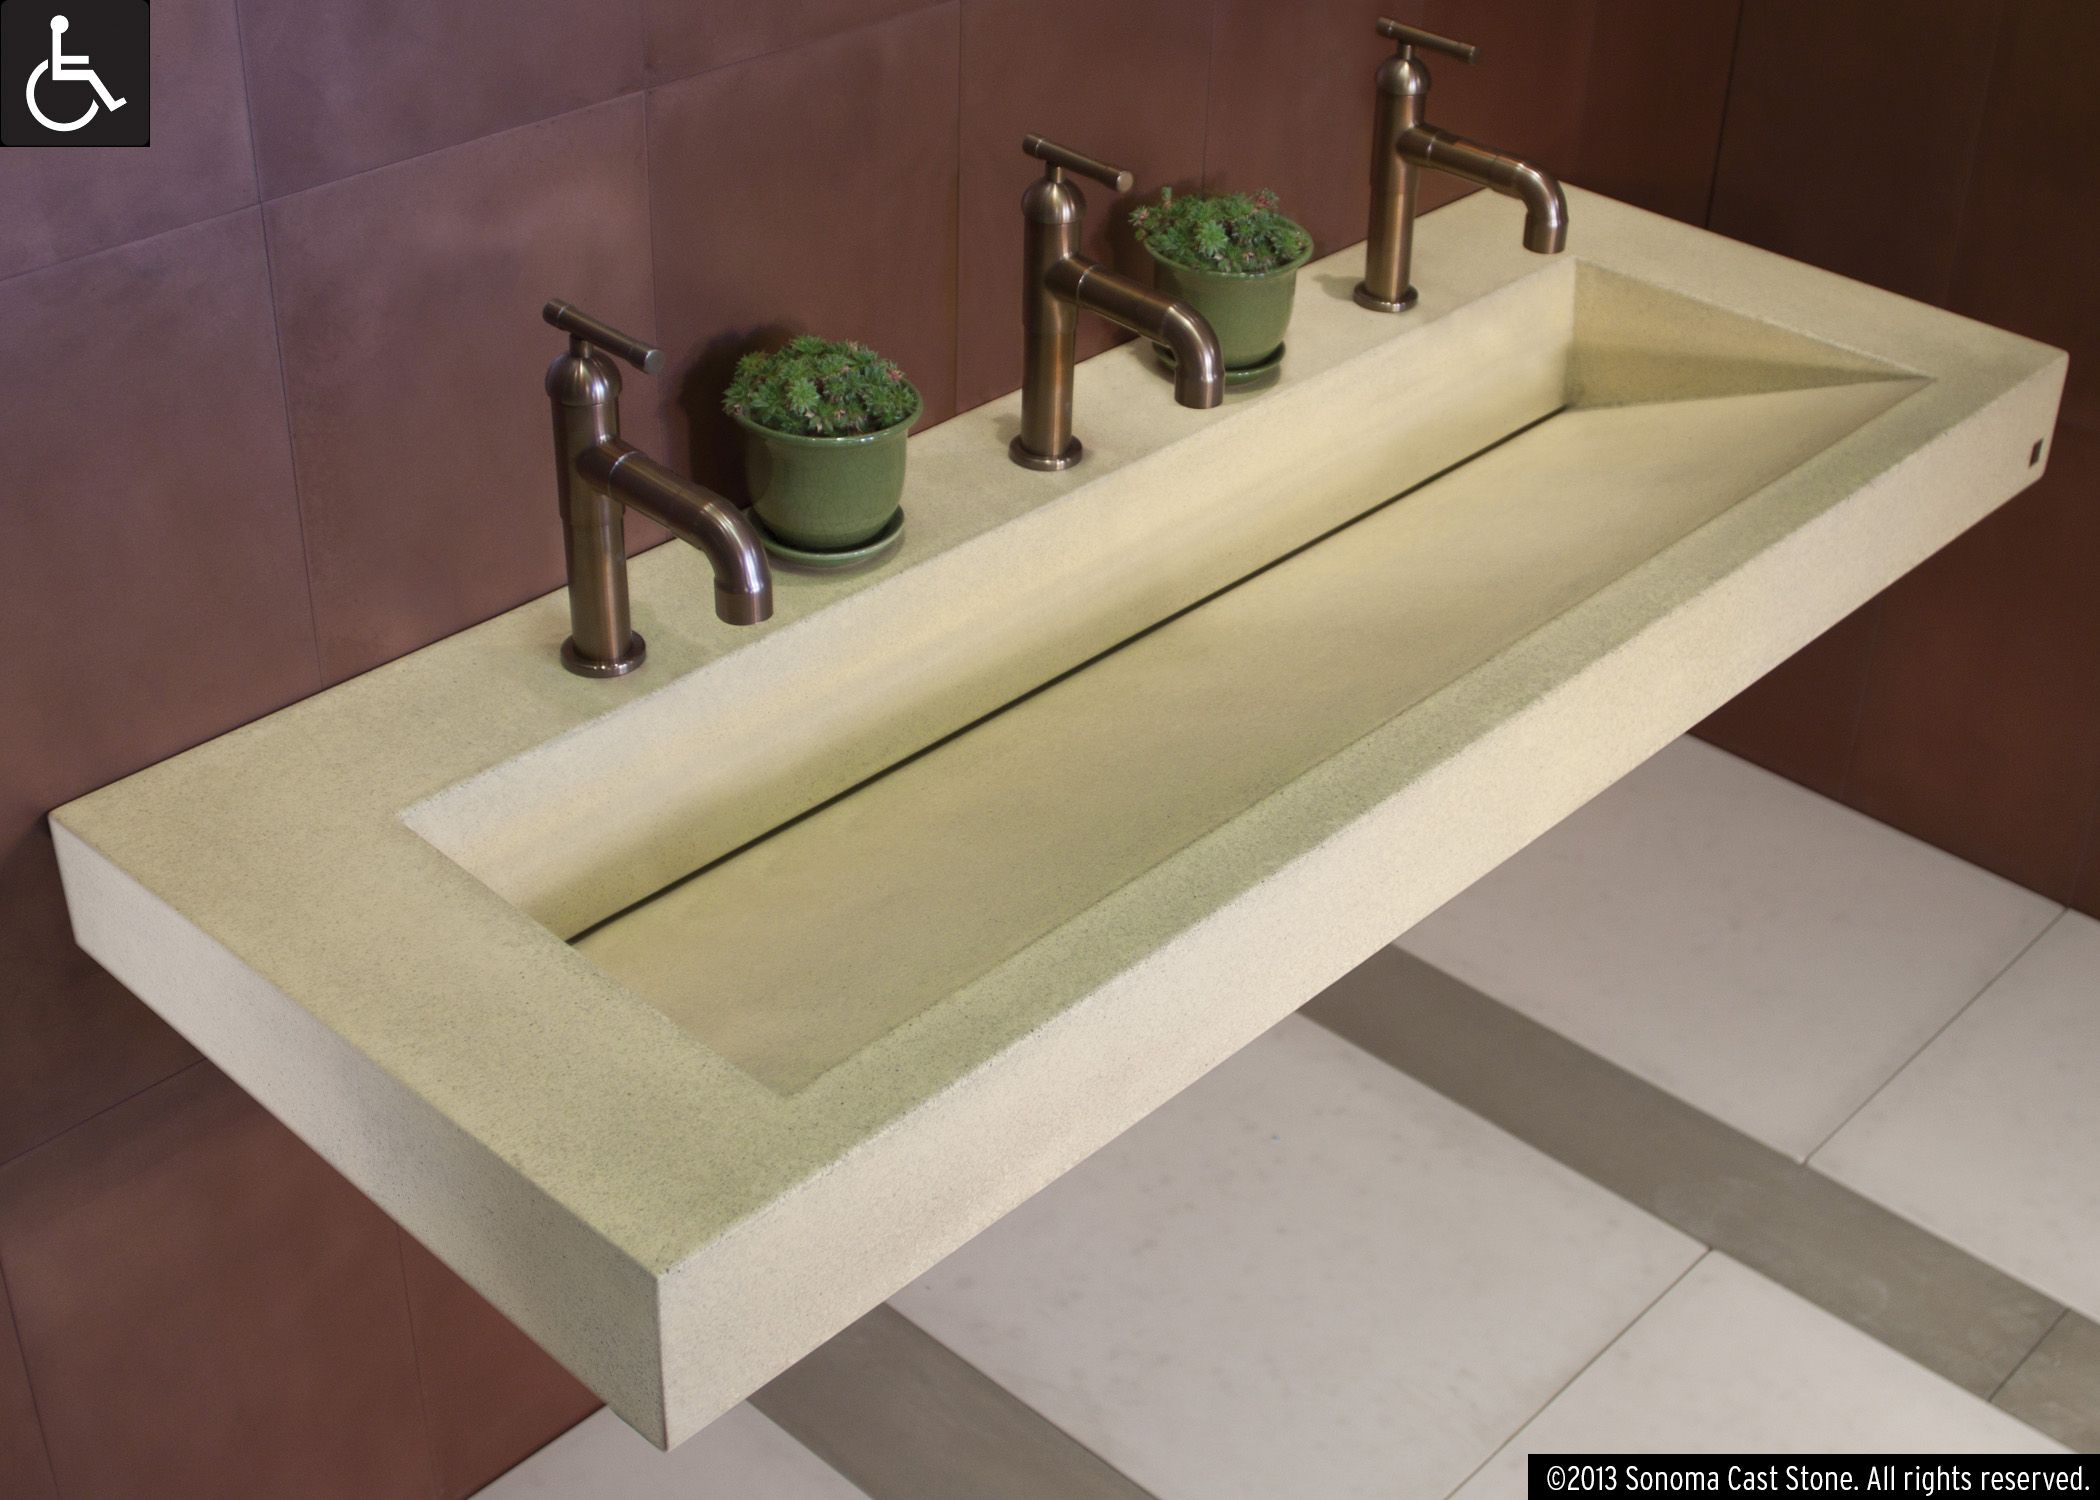 Superior Our Most Versatile Design, Ramp Sinks Slope To Order! Front, Back, Side